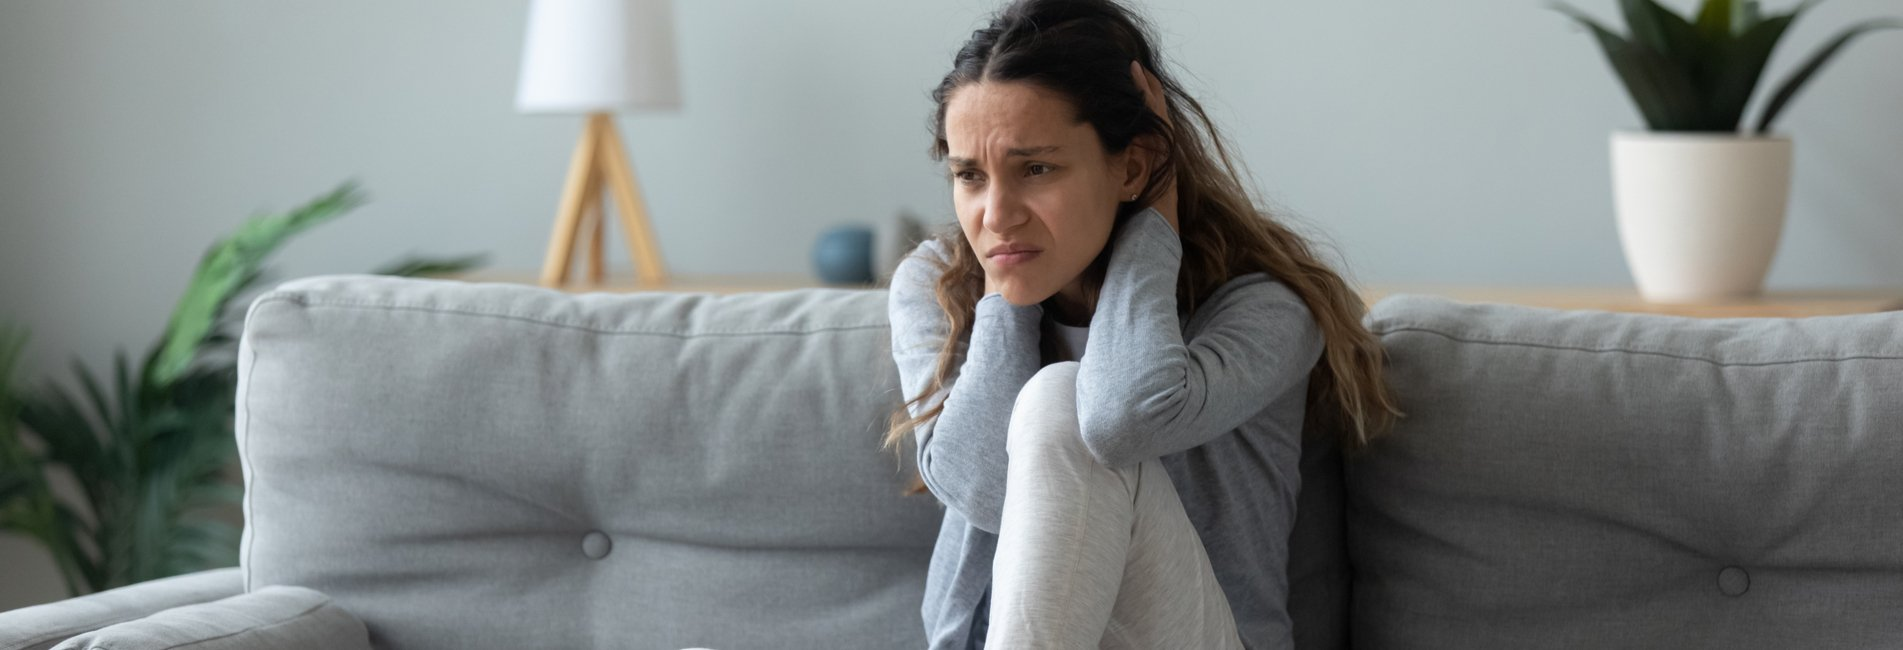 Should I Go Back to Rehab Resurgence – A woman struggling with addiction contemplates going back to rehab.